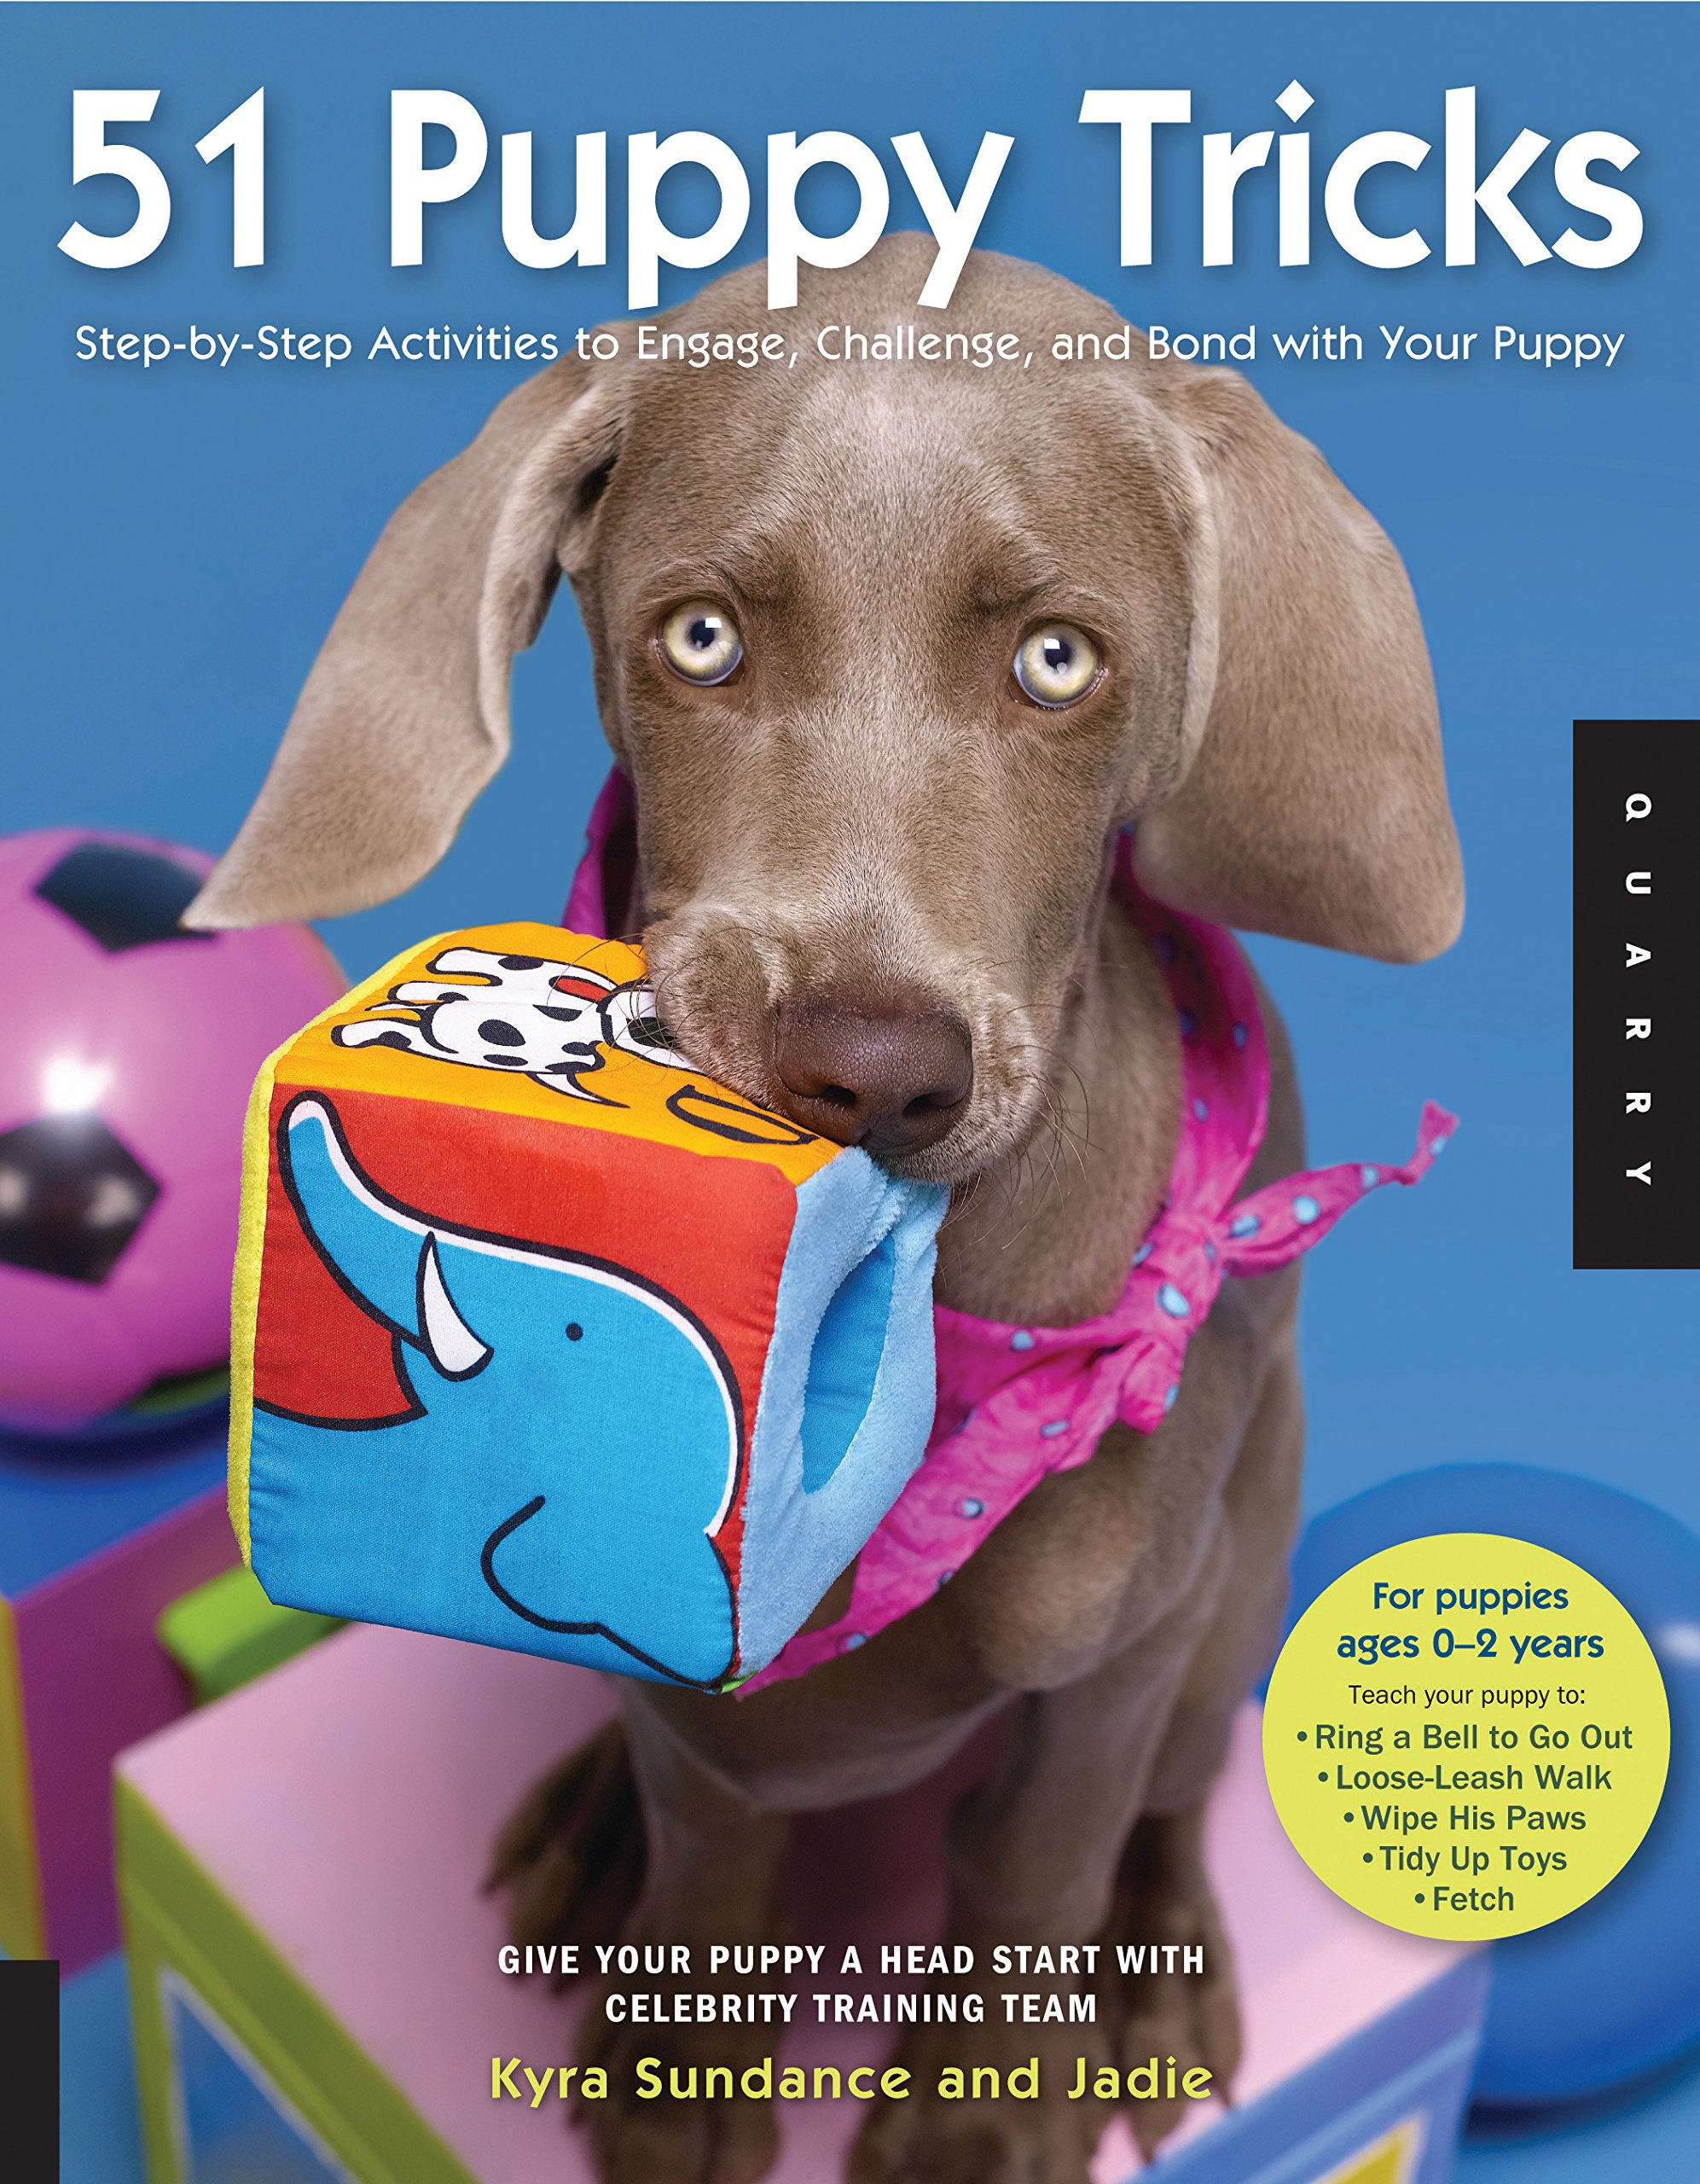 51 Puppy Tricks: Step-by-Step Activities to Engage, Challenge, and Bond with Your Puppy by Quayside Publishing